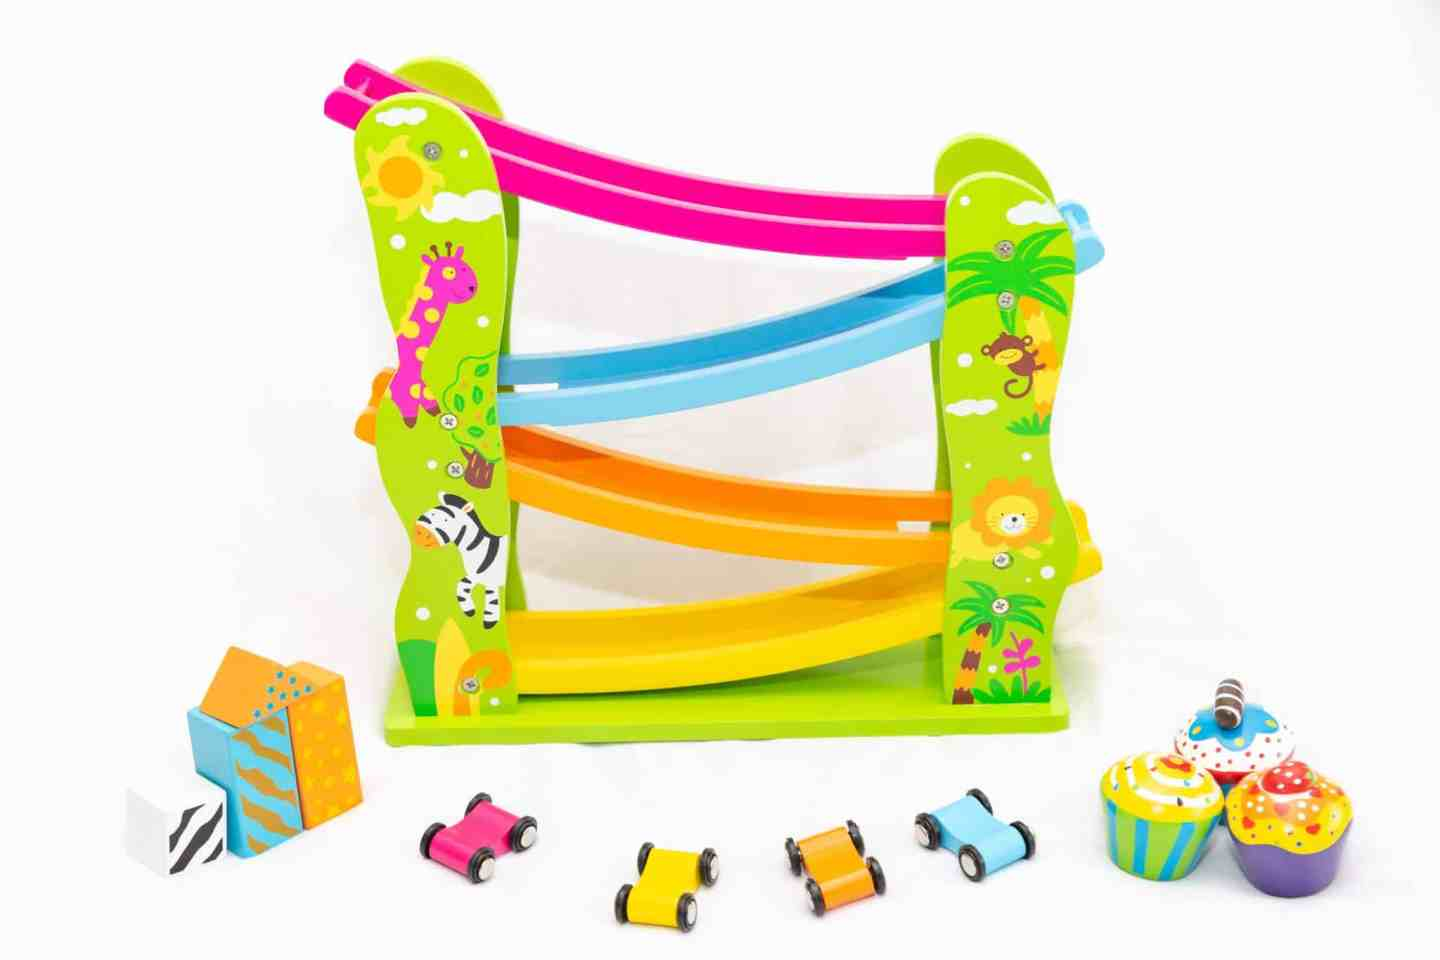 21 Non-Toxic Toys Your Toddler Will Love